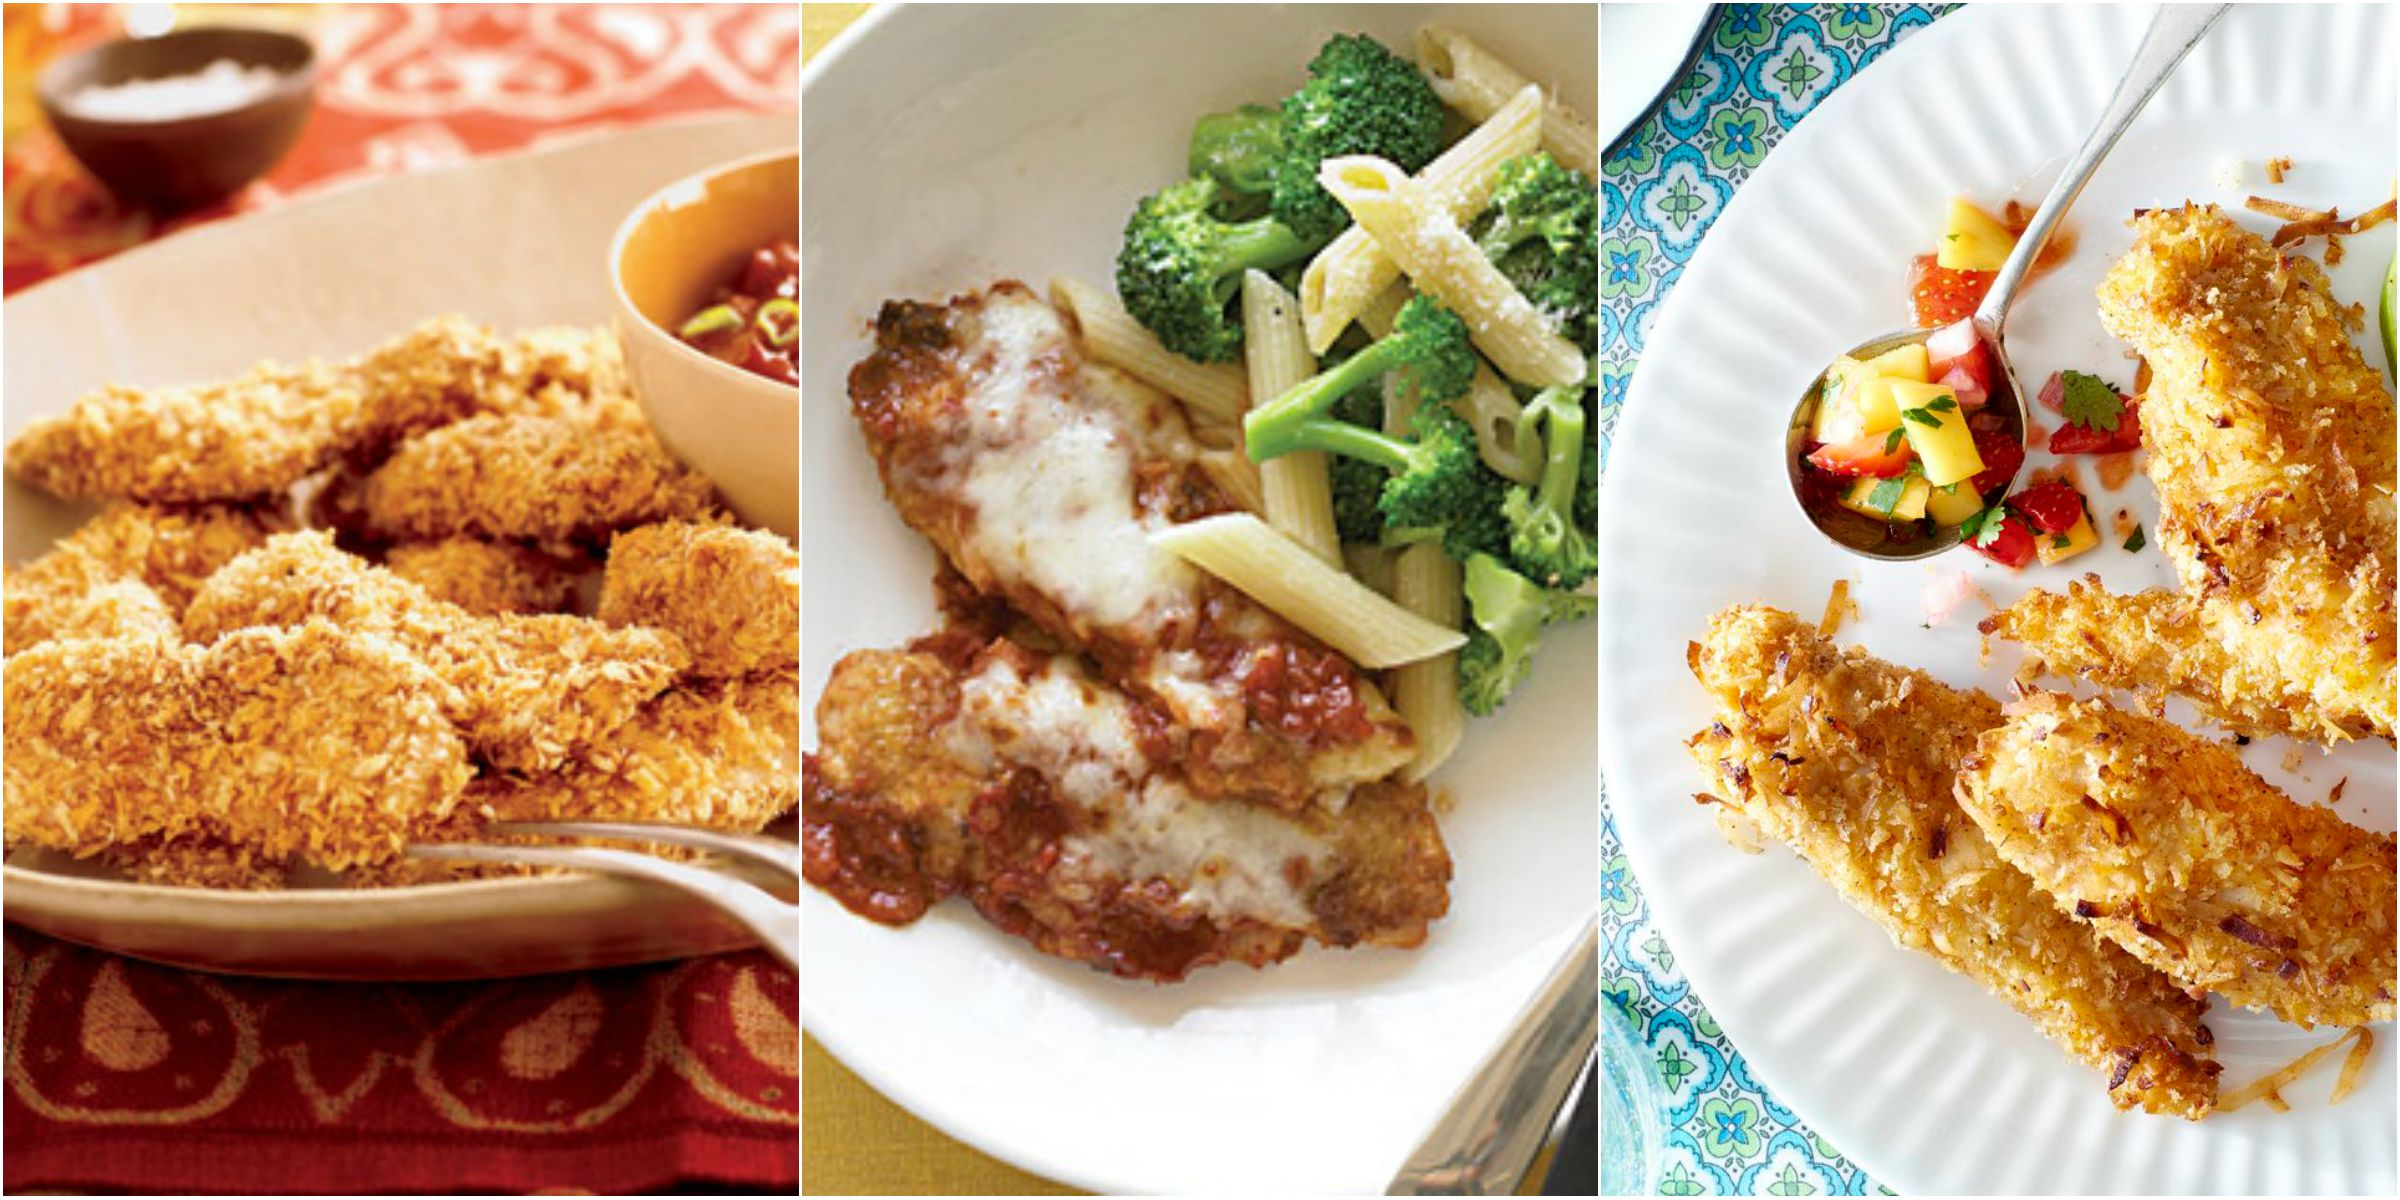 Jun 11, · This easy Baked Chicken Tenders recipe is one of our favorite family dinners. Baked Chicken Tenders Recipe I grew up eating chicken cutlets, so breaded chicken is total comfort food for me—and this recipe for Easy Cornmeal -Crusted Parmesan Chicken Tenders is a baked version that packs plenty of flavor and comes together in less than 30 jdgcrlweightlossduzmpl.mle: American.